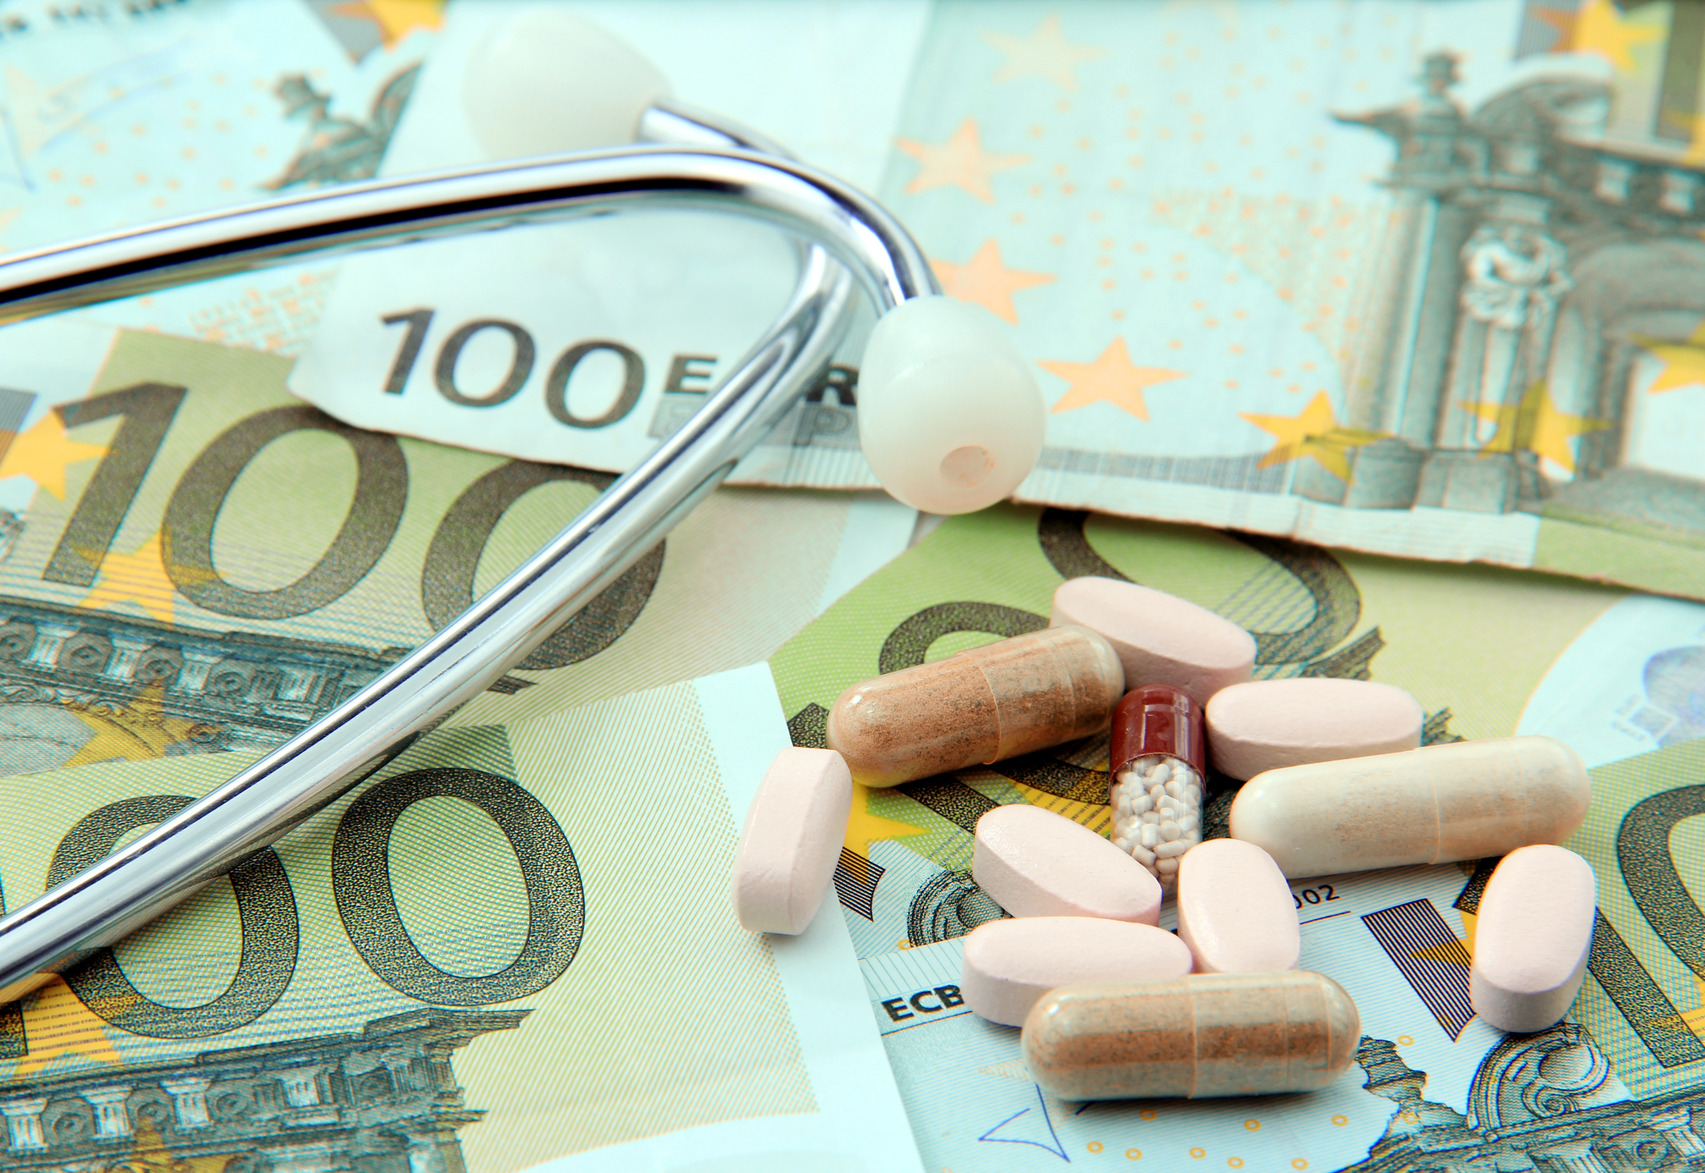 moral hazard in the health insurance market economics essay Moral hazard and adverse selection in health a central challenge in designing health insurance plans is entrepreneurship and economic growth calls for papers.